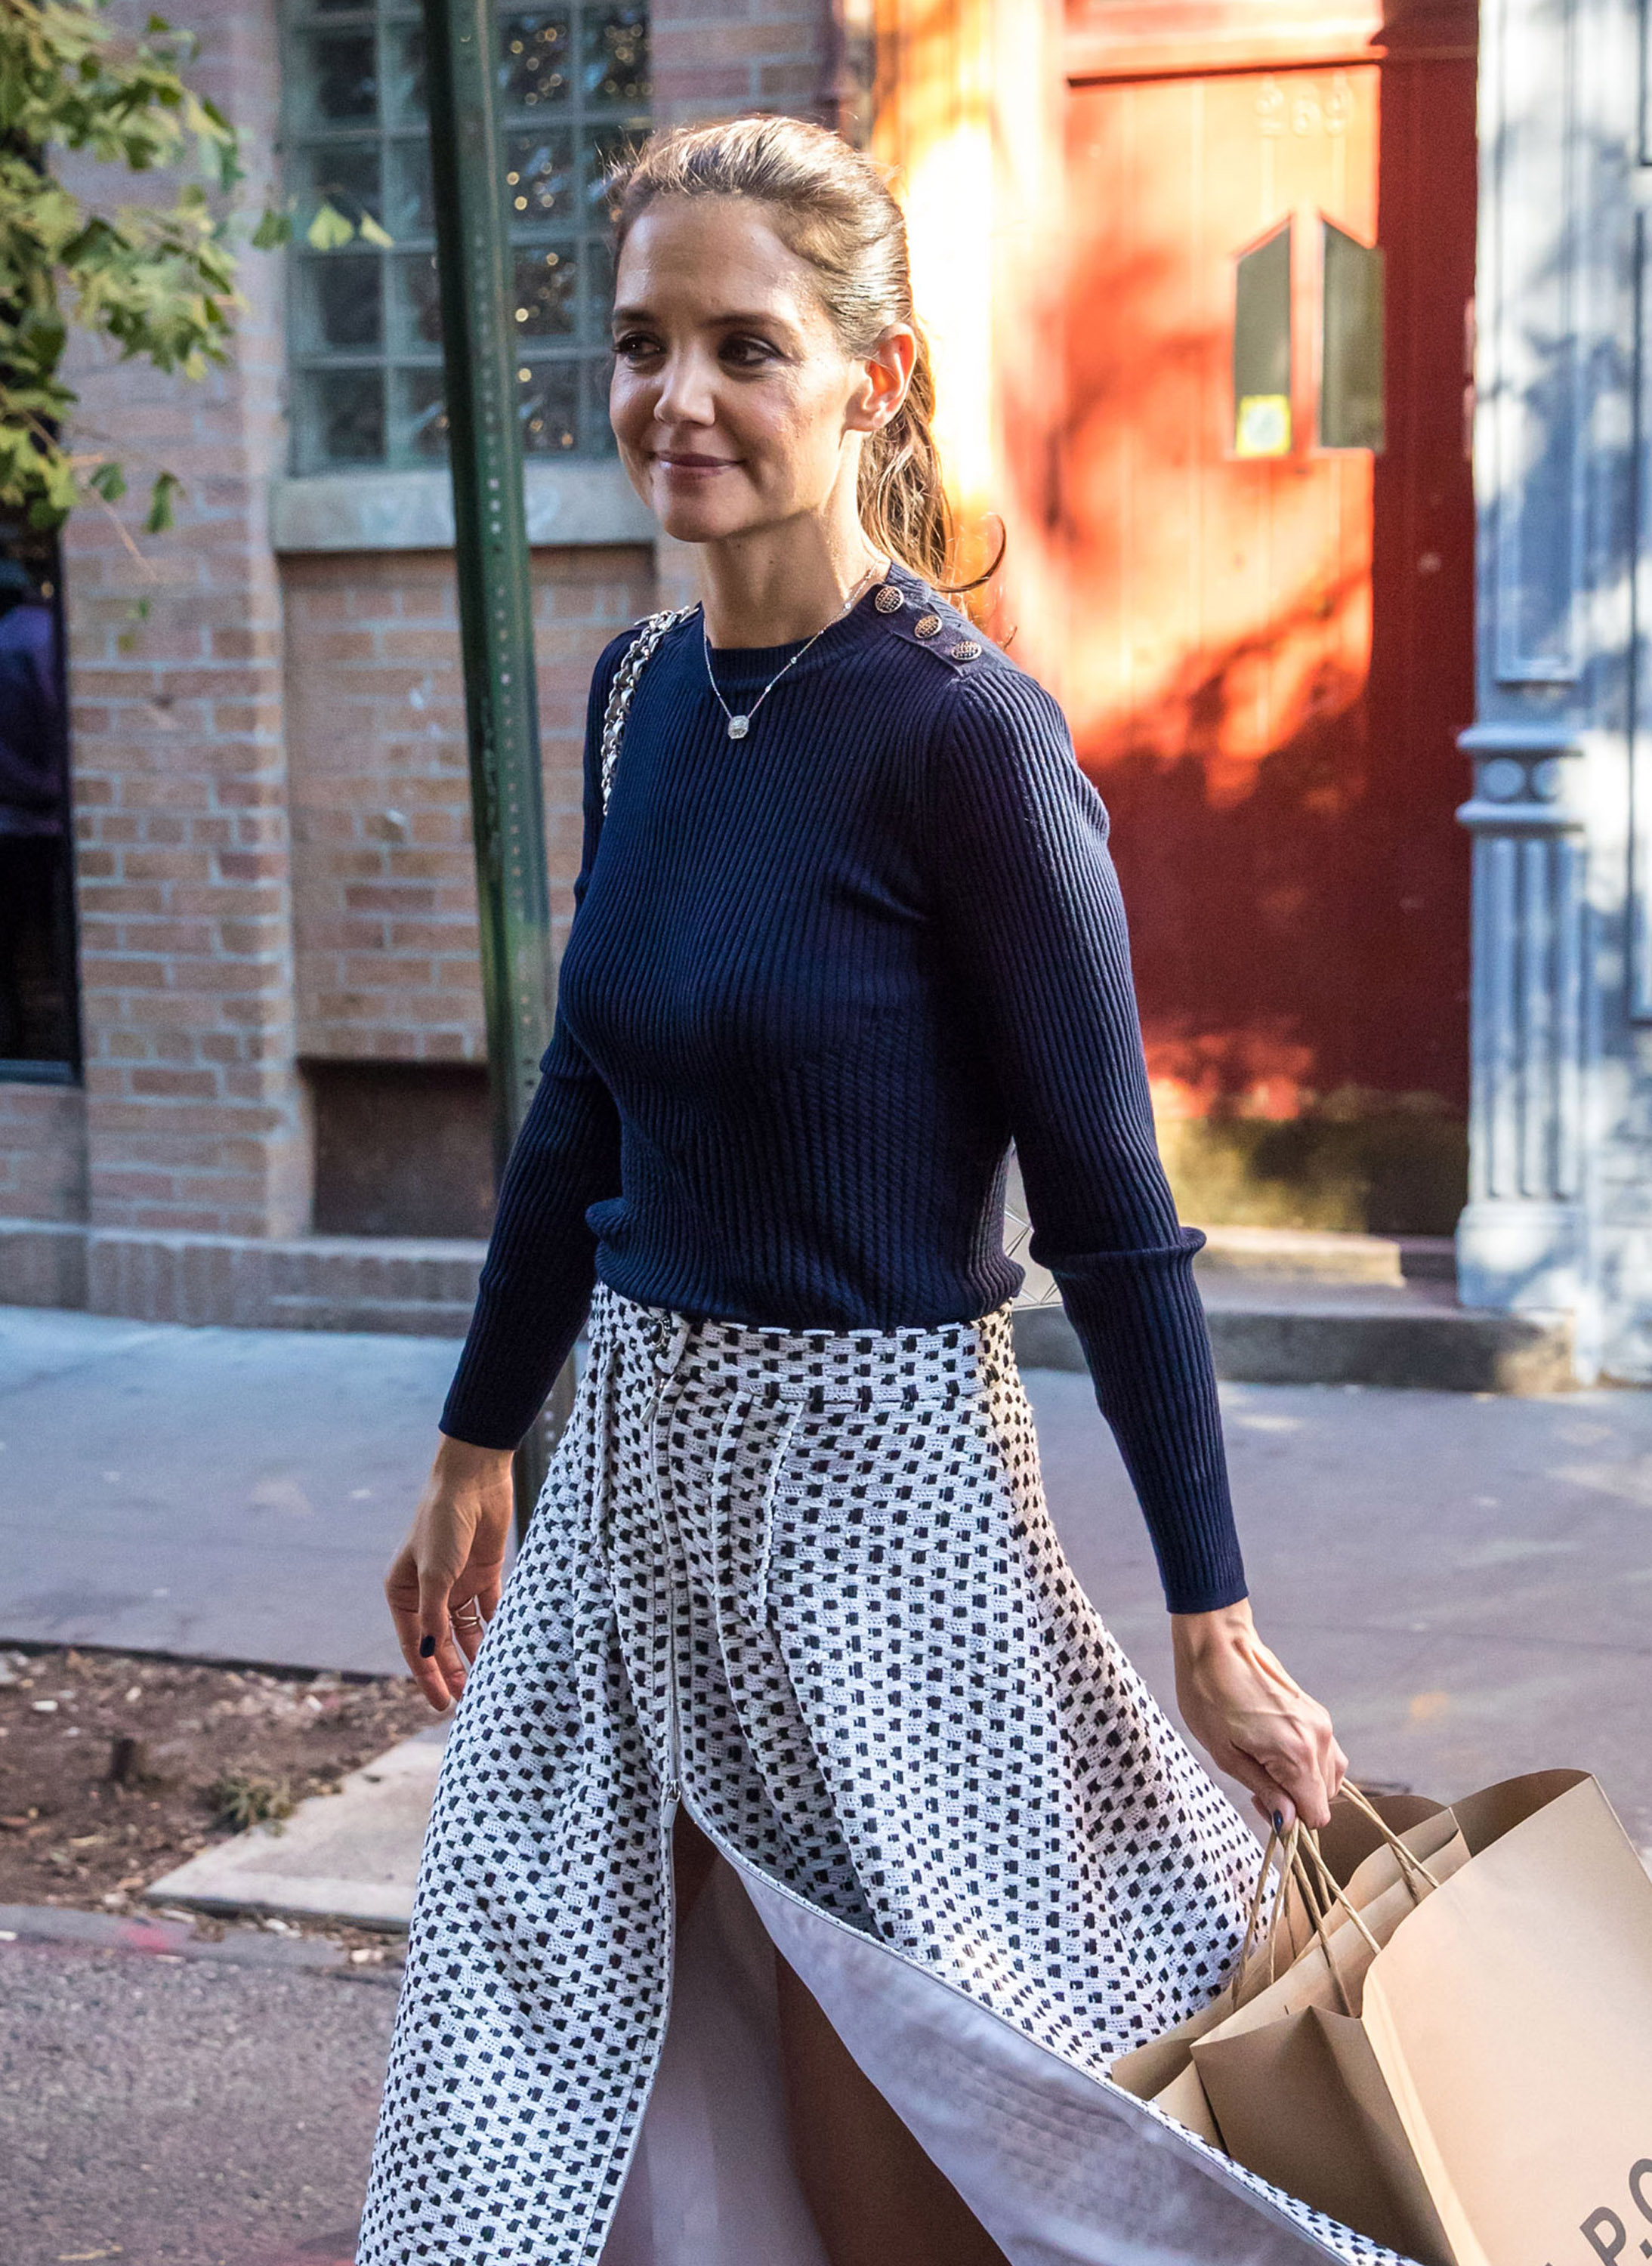 katie-holmes-shopping-in-the-west-village-nyc-102516-5.jpg